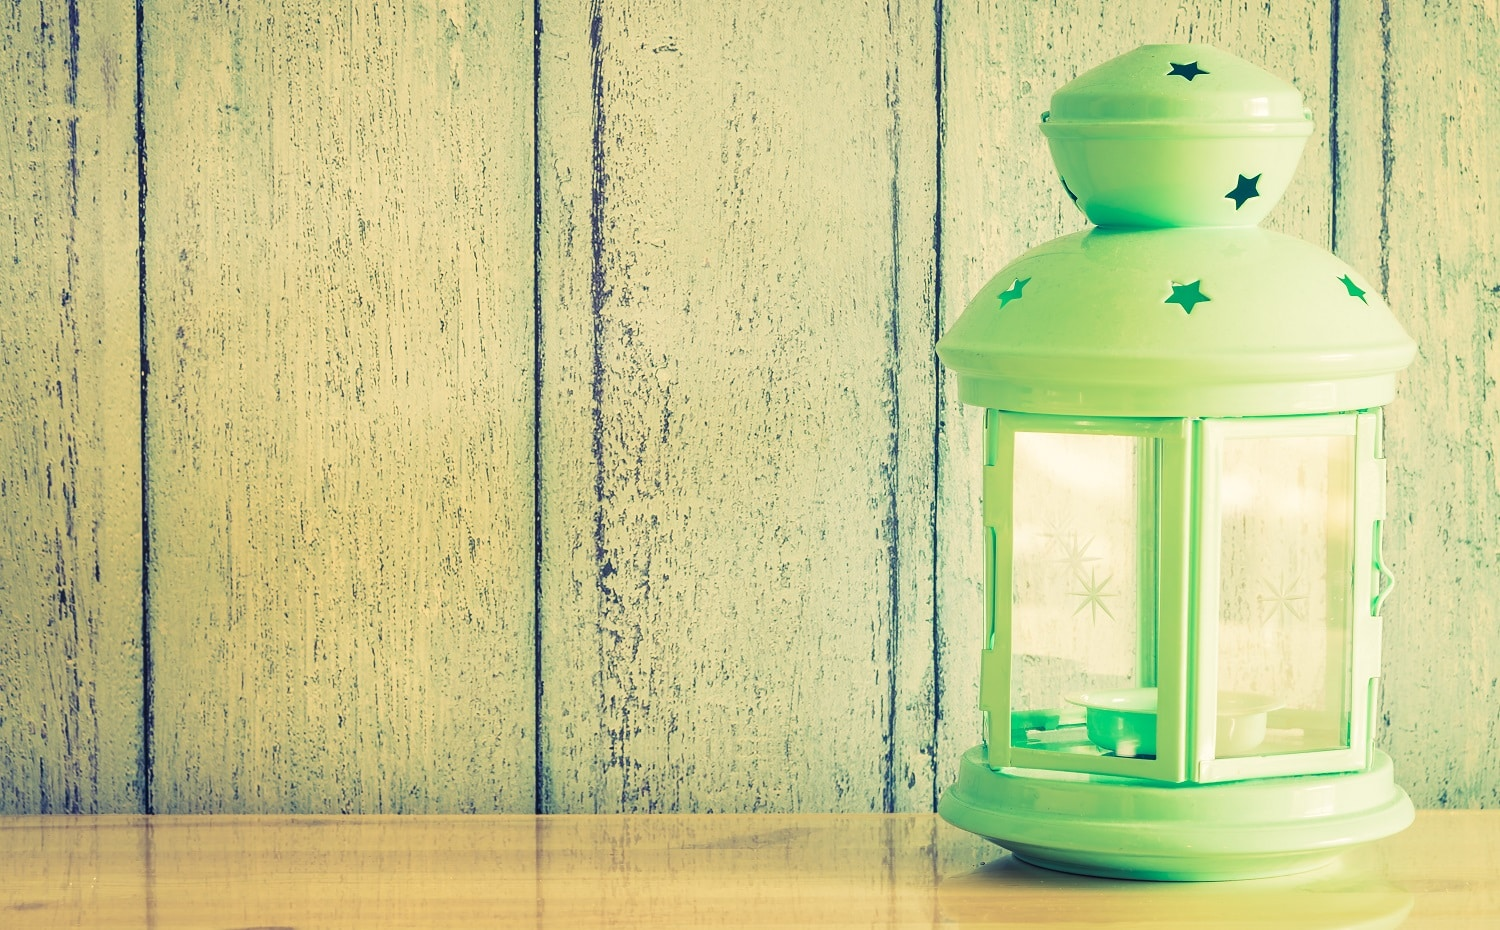 Vintage lantern lamp with copy space - Vintage filter effect